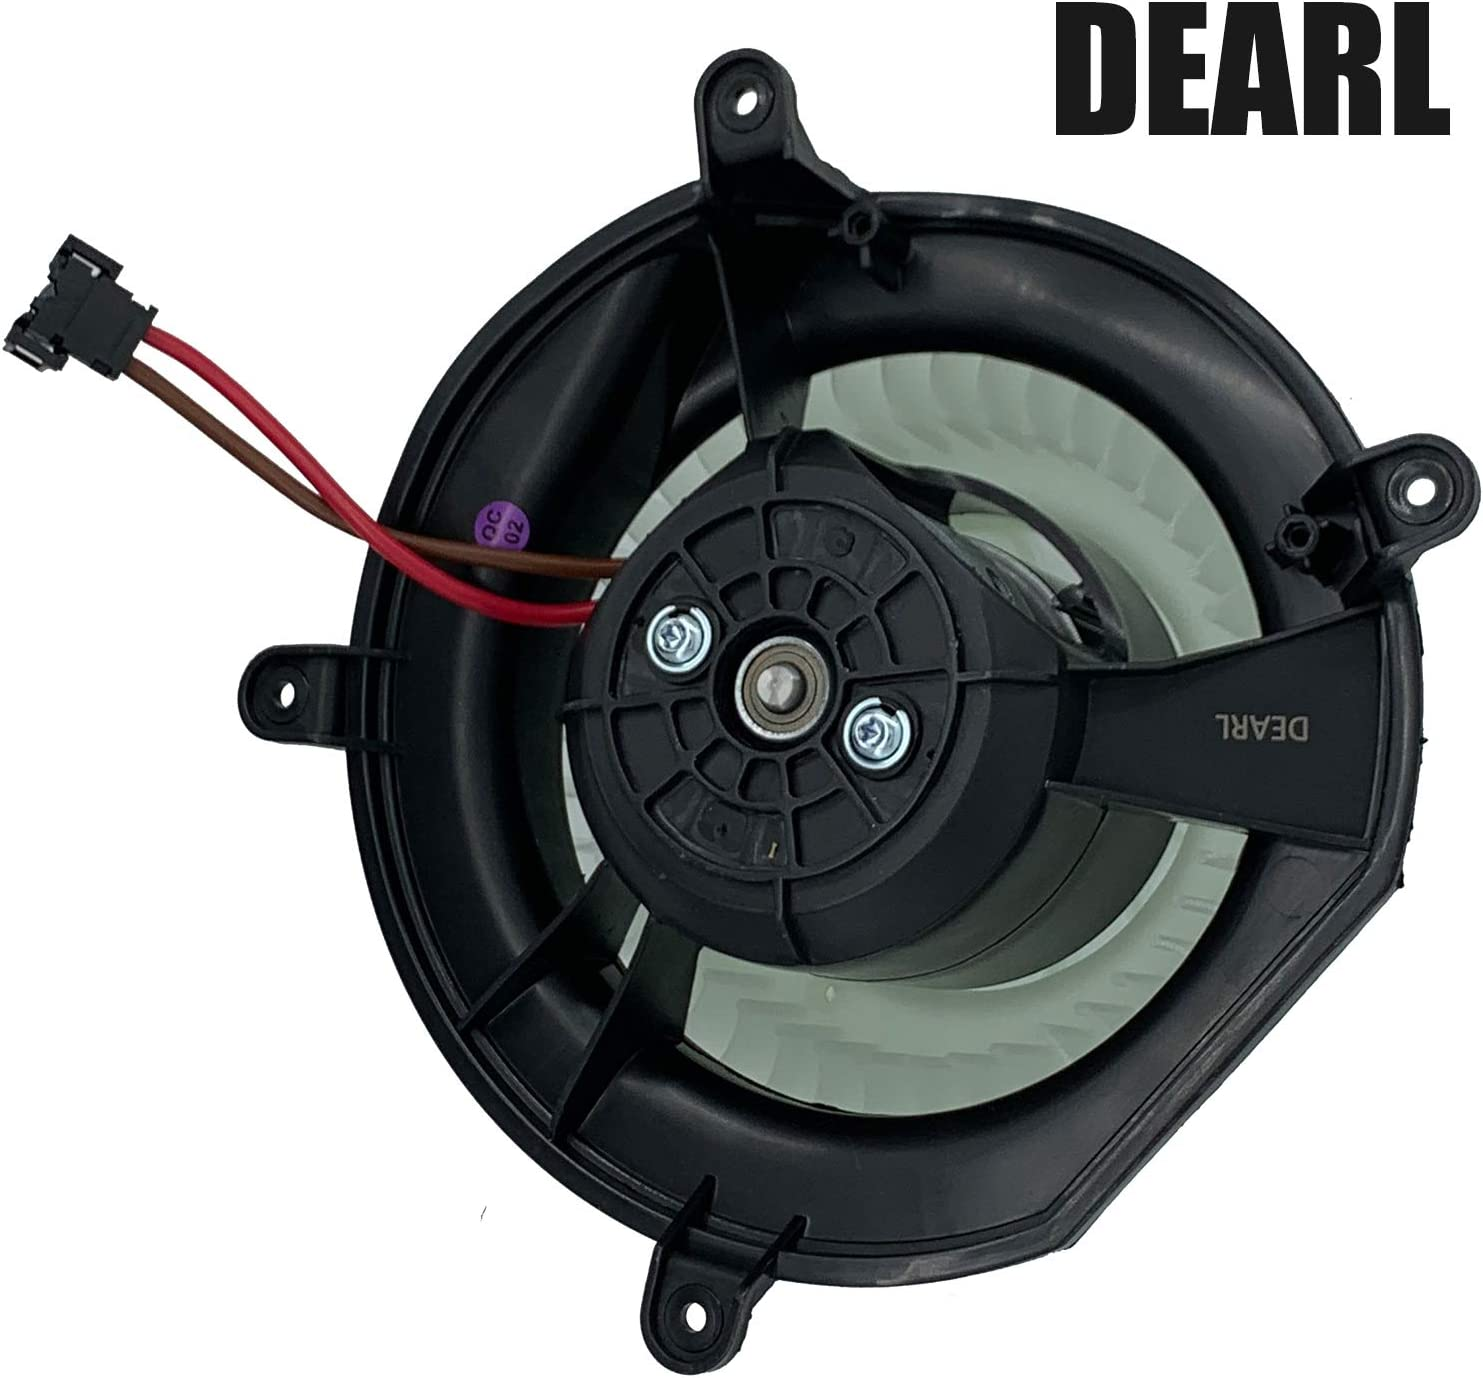 08-09 E300 08-10 CLS550 63 AMG 04-06 E55 AMG Front AC Heater Blower Motor with Fan Compatible with 07-09 CLS350 E280 E550 E63 AMG// 06-09 CLS500 E350 04-09 E500 03-09 E320